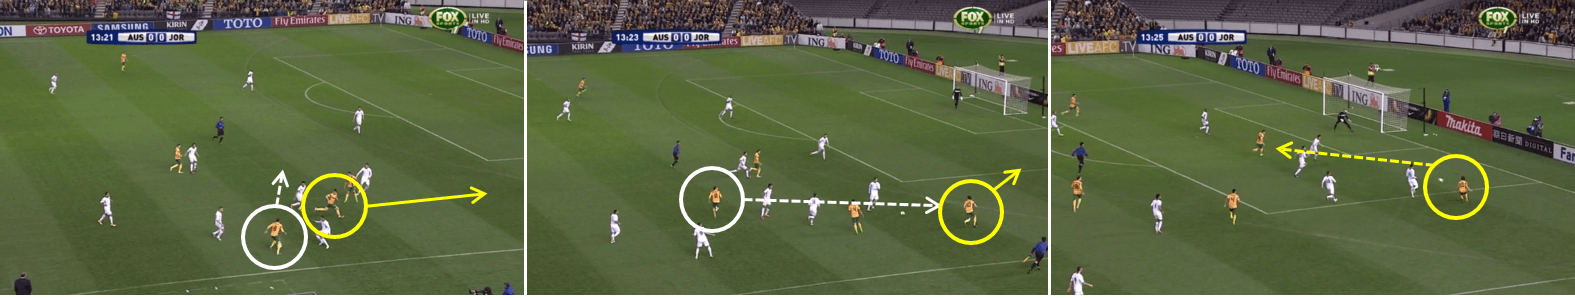 White indicates Wilkshire, yellow Kruse. Dotted line for a pass, solid for a run. Every time Kruse got another chance, his delivery got better